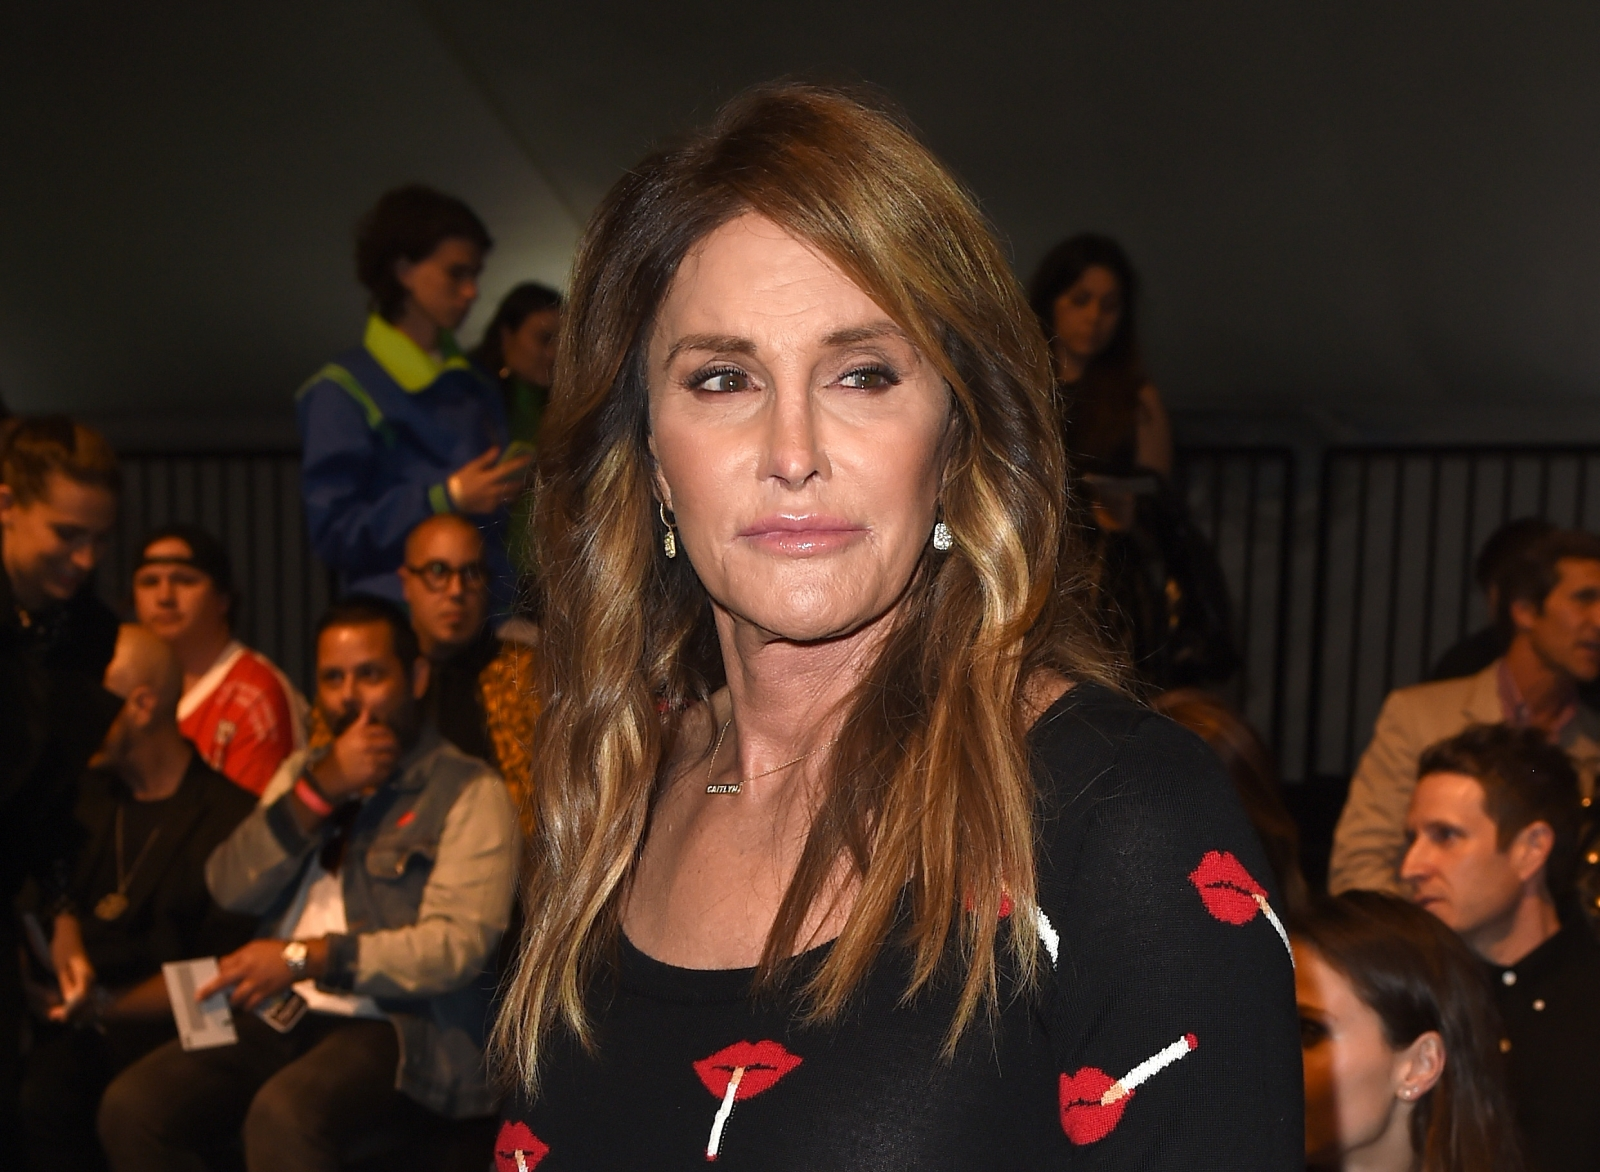 Transgender icon Caitlyn Jenner 'terrified' after hate crime attack at LGBT Awards in London